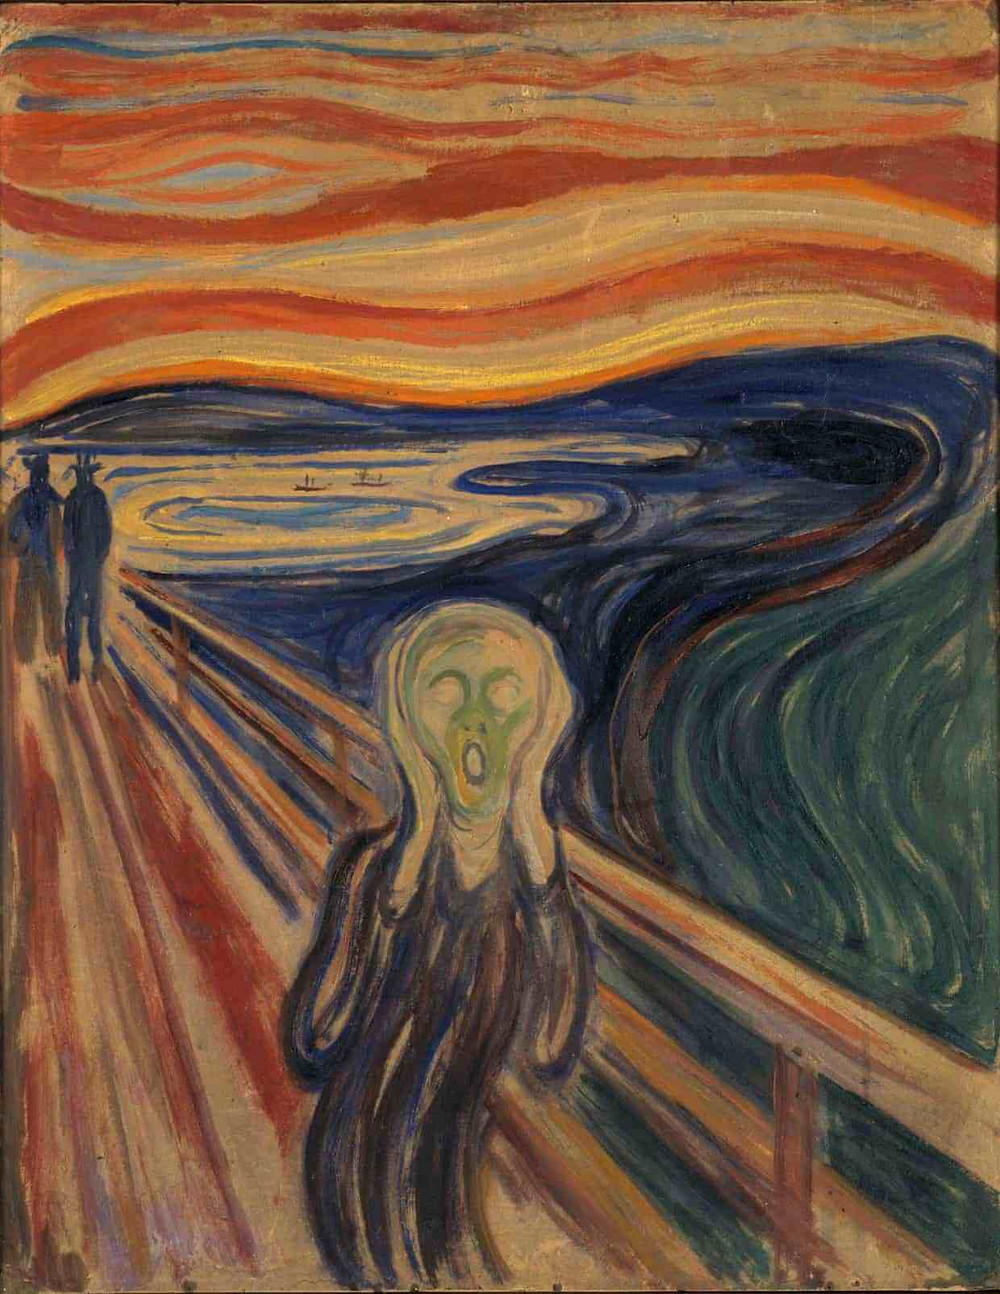 The scream painting by Edvard Munch